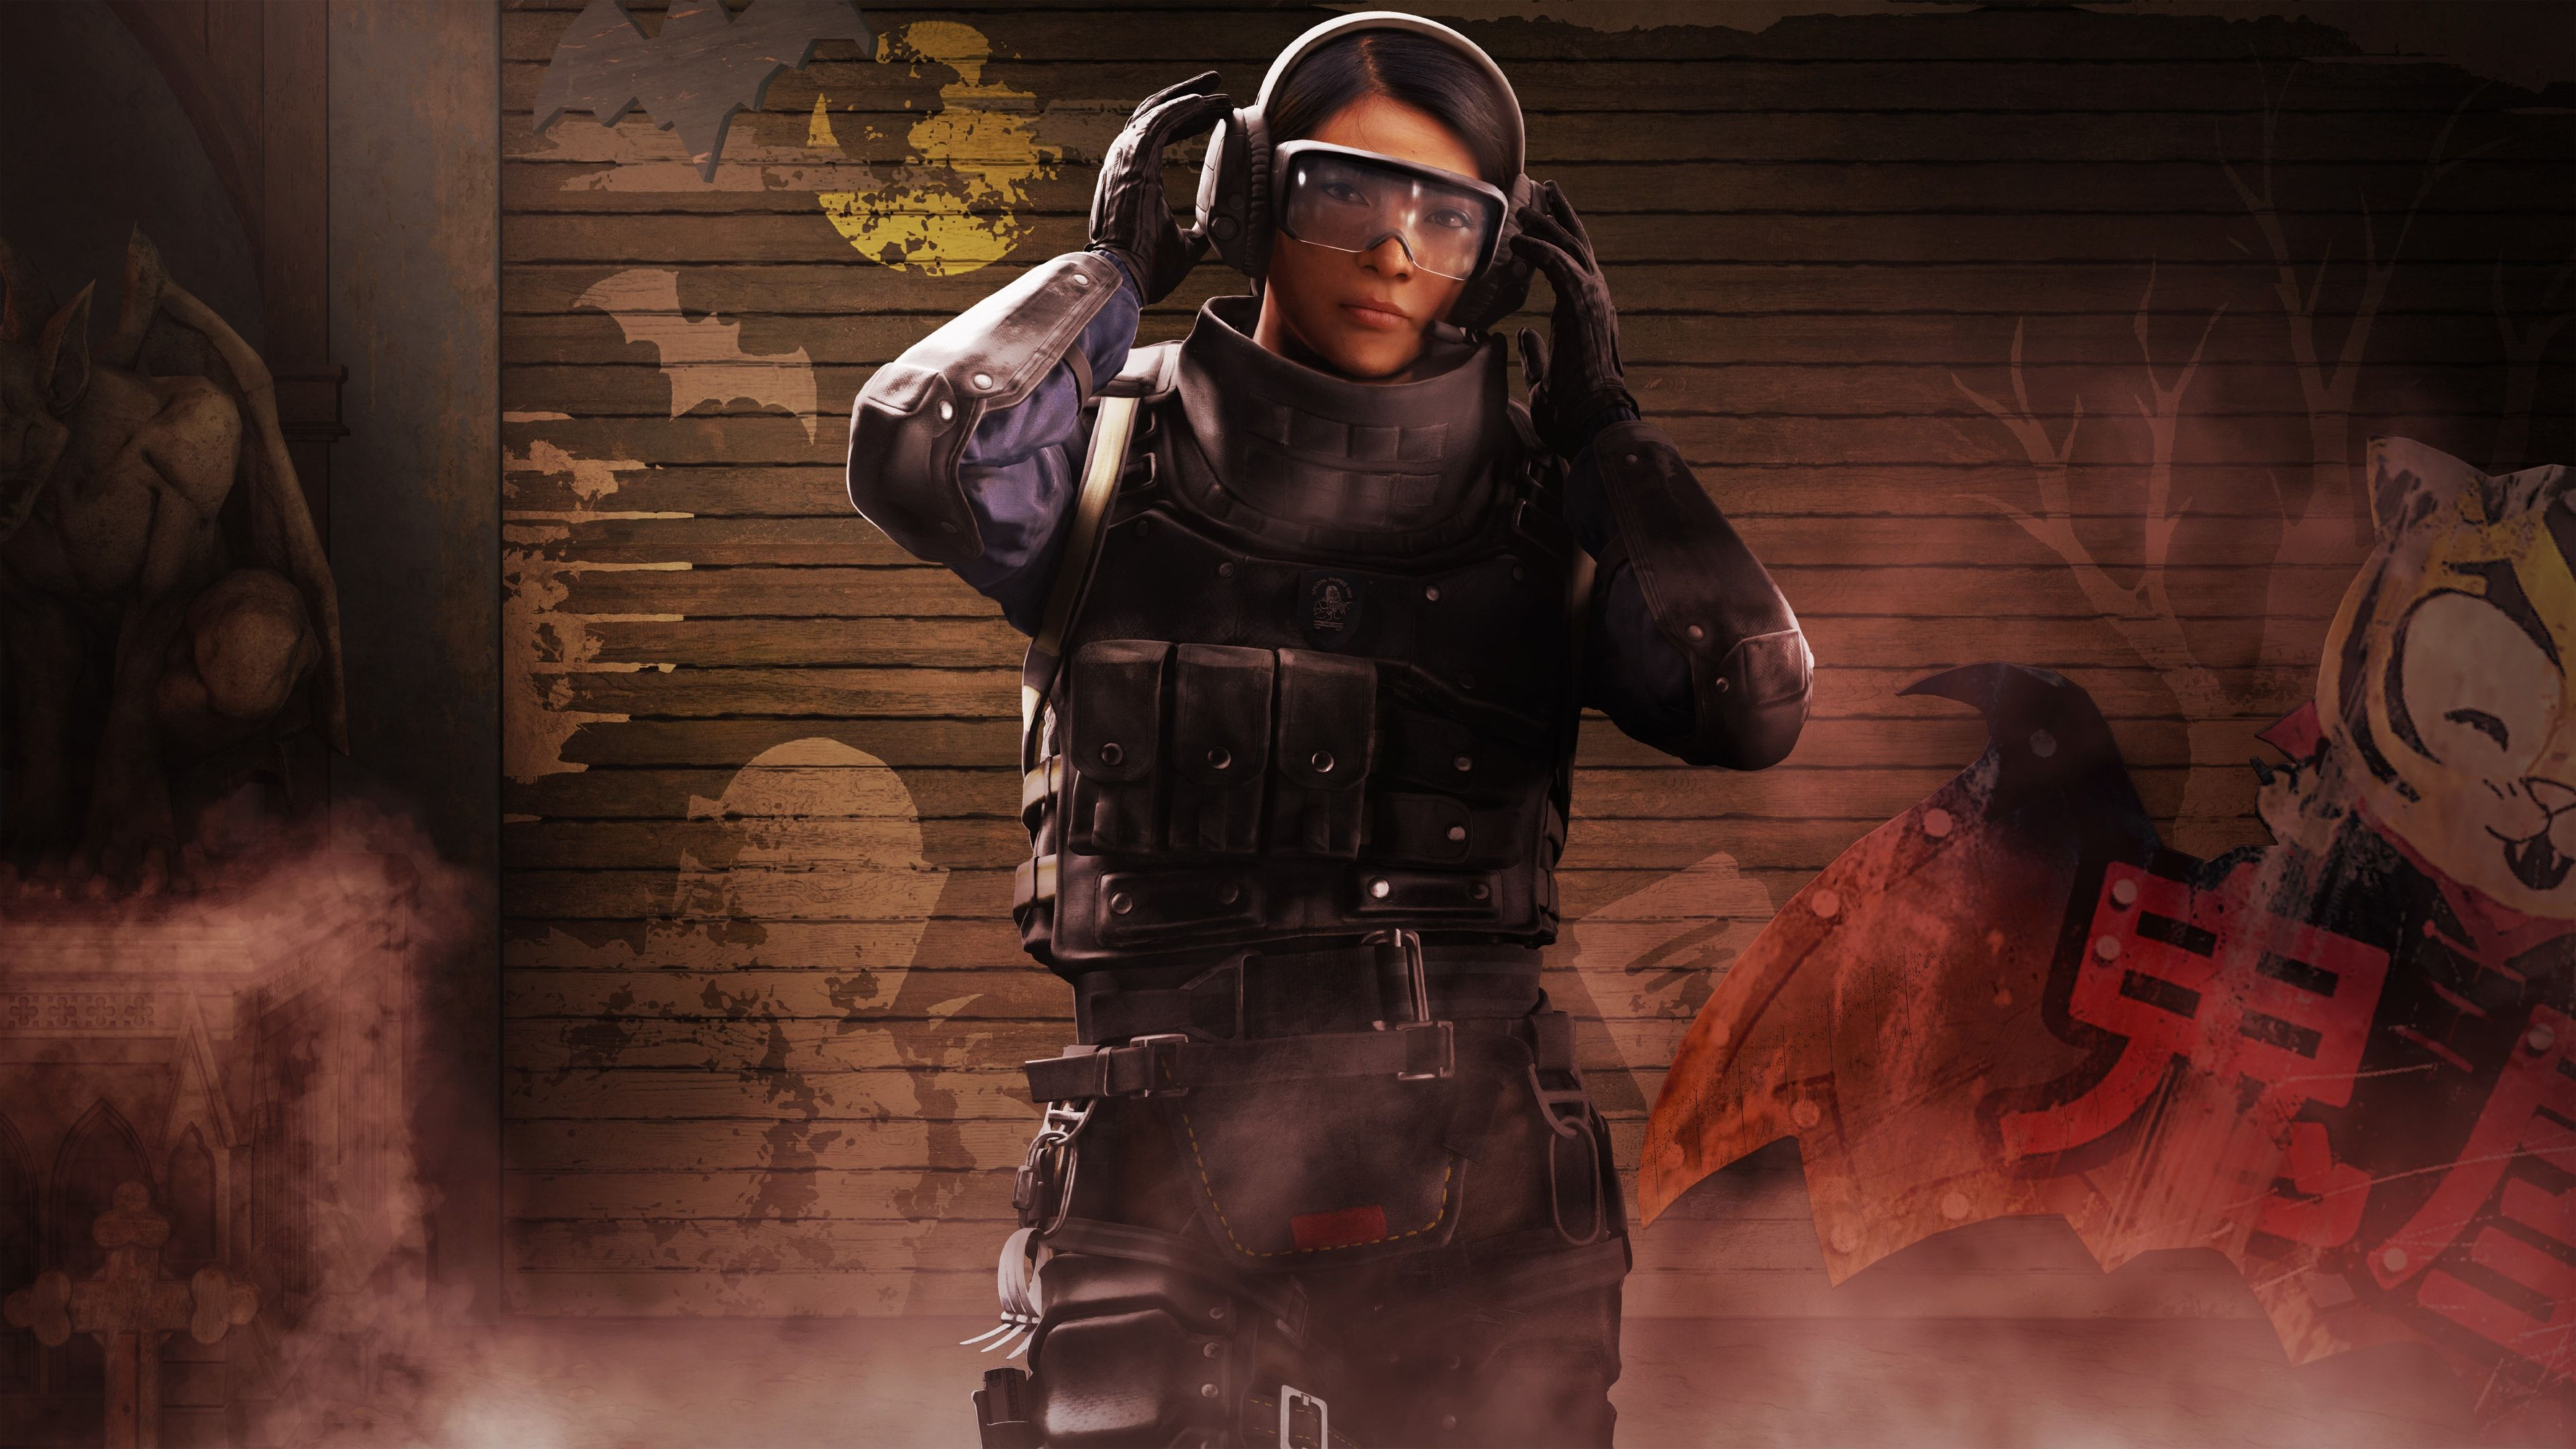 Ying Operator Tom Clancys Rainbow Six Siege Game With Images